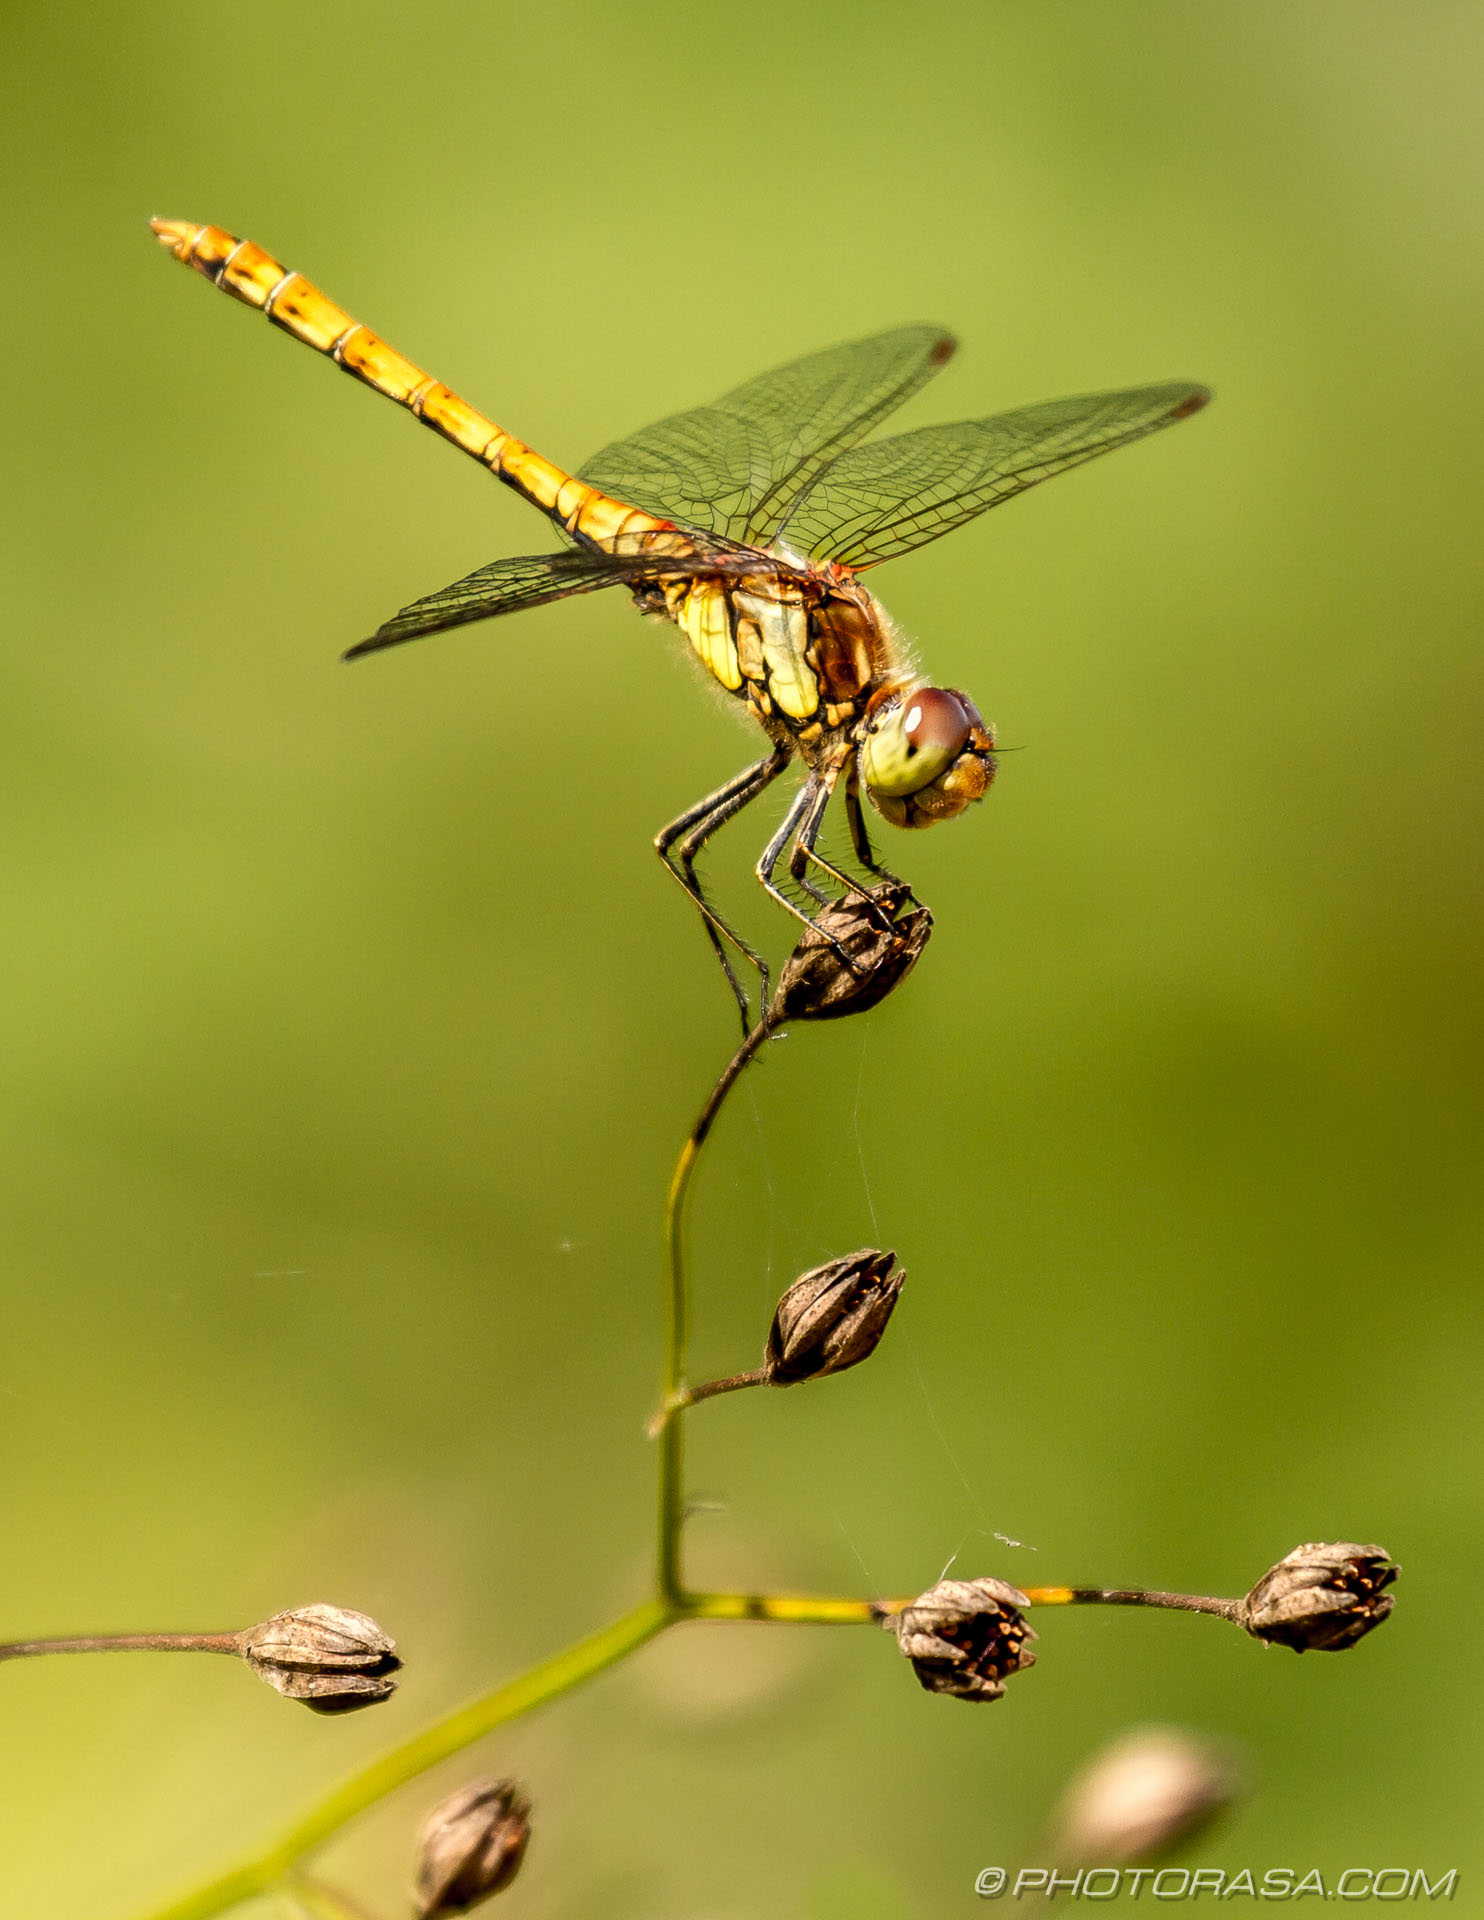 http://photorasa.com/dragonflies/female-common-darter-perched-on-plant-2/